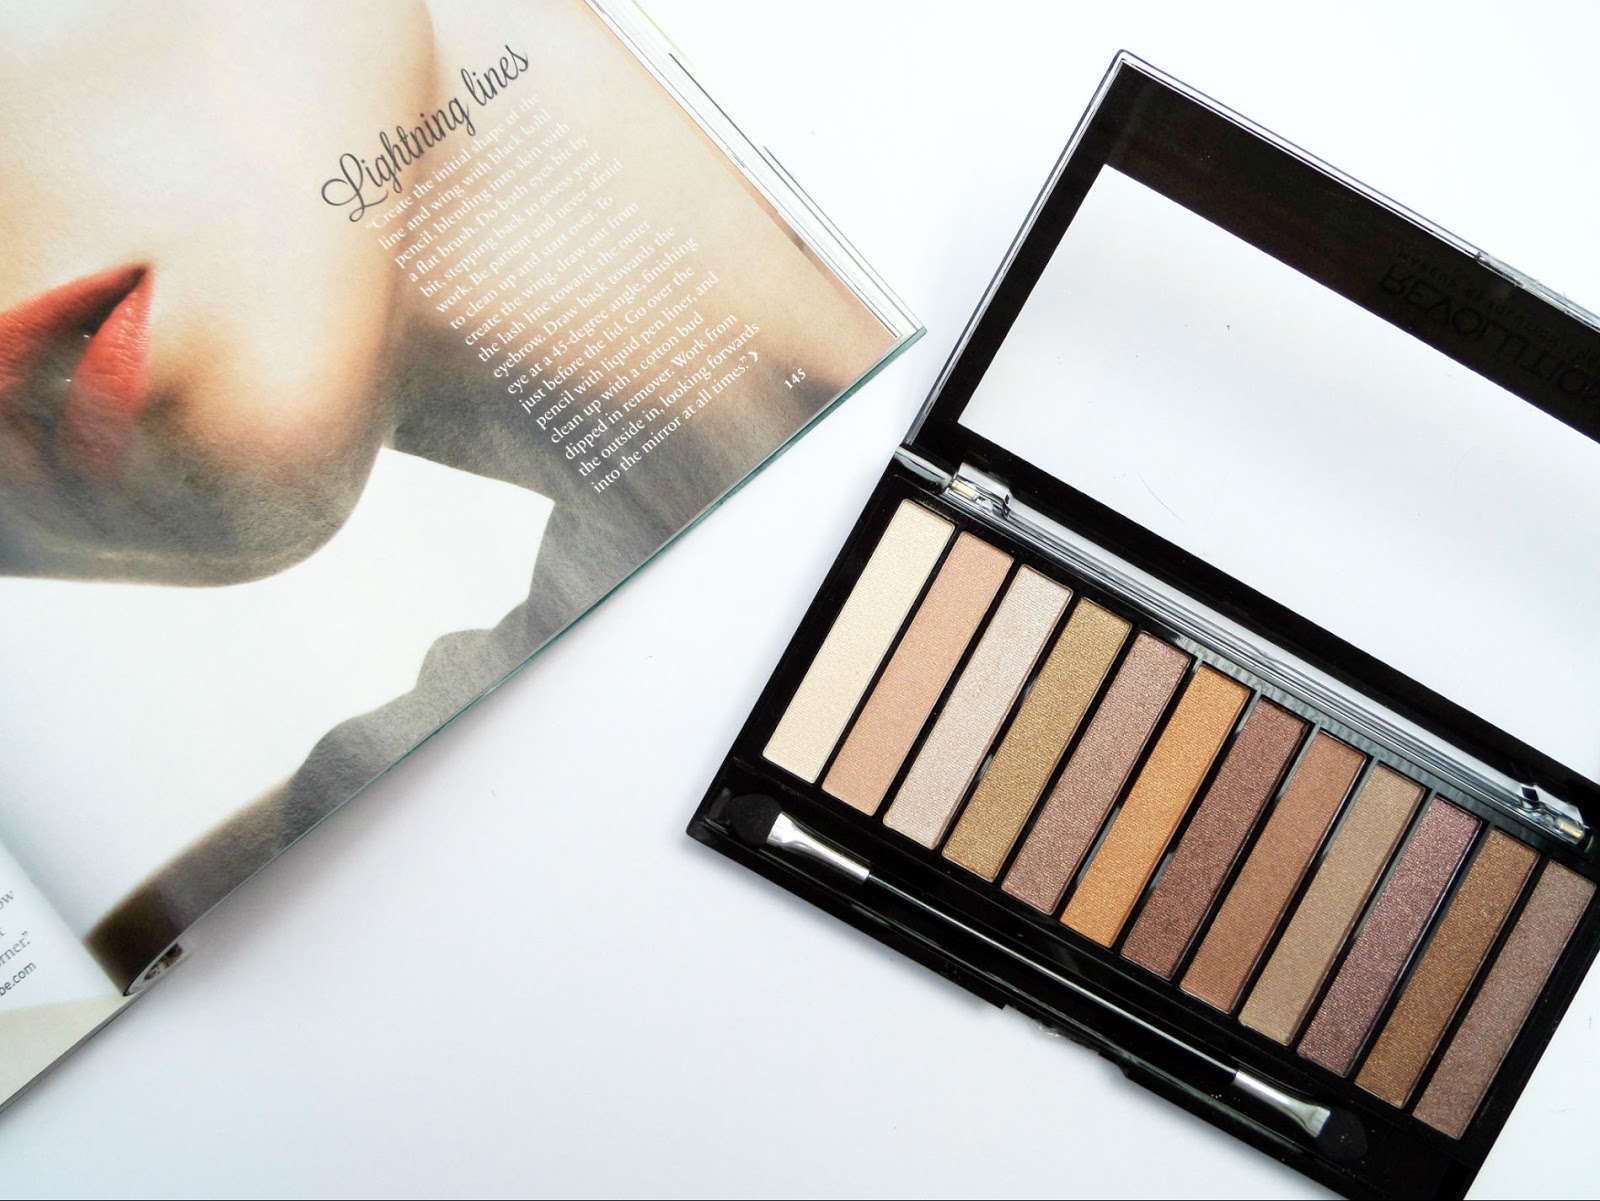 The Makeup Revolution Essential Shimmer Eyeshadow Palette